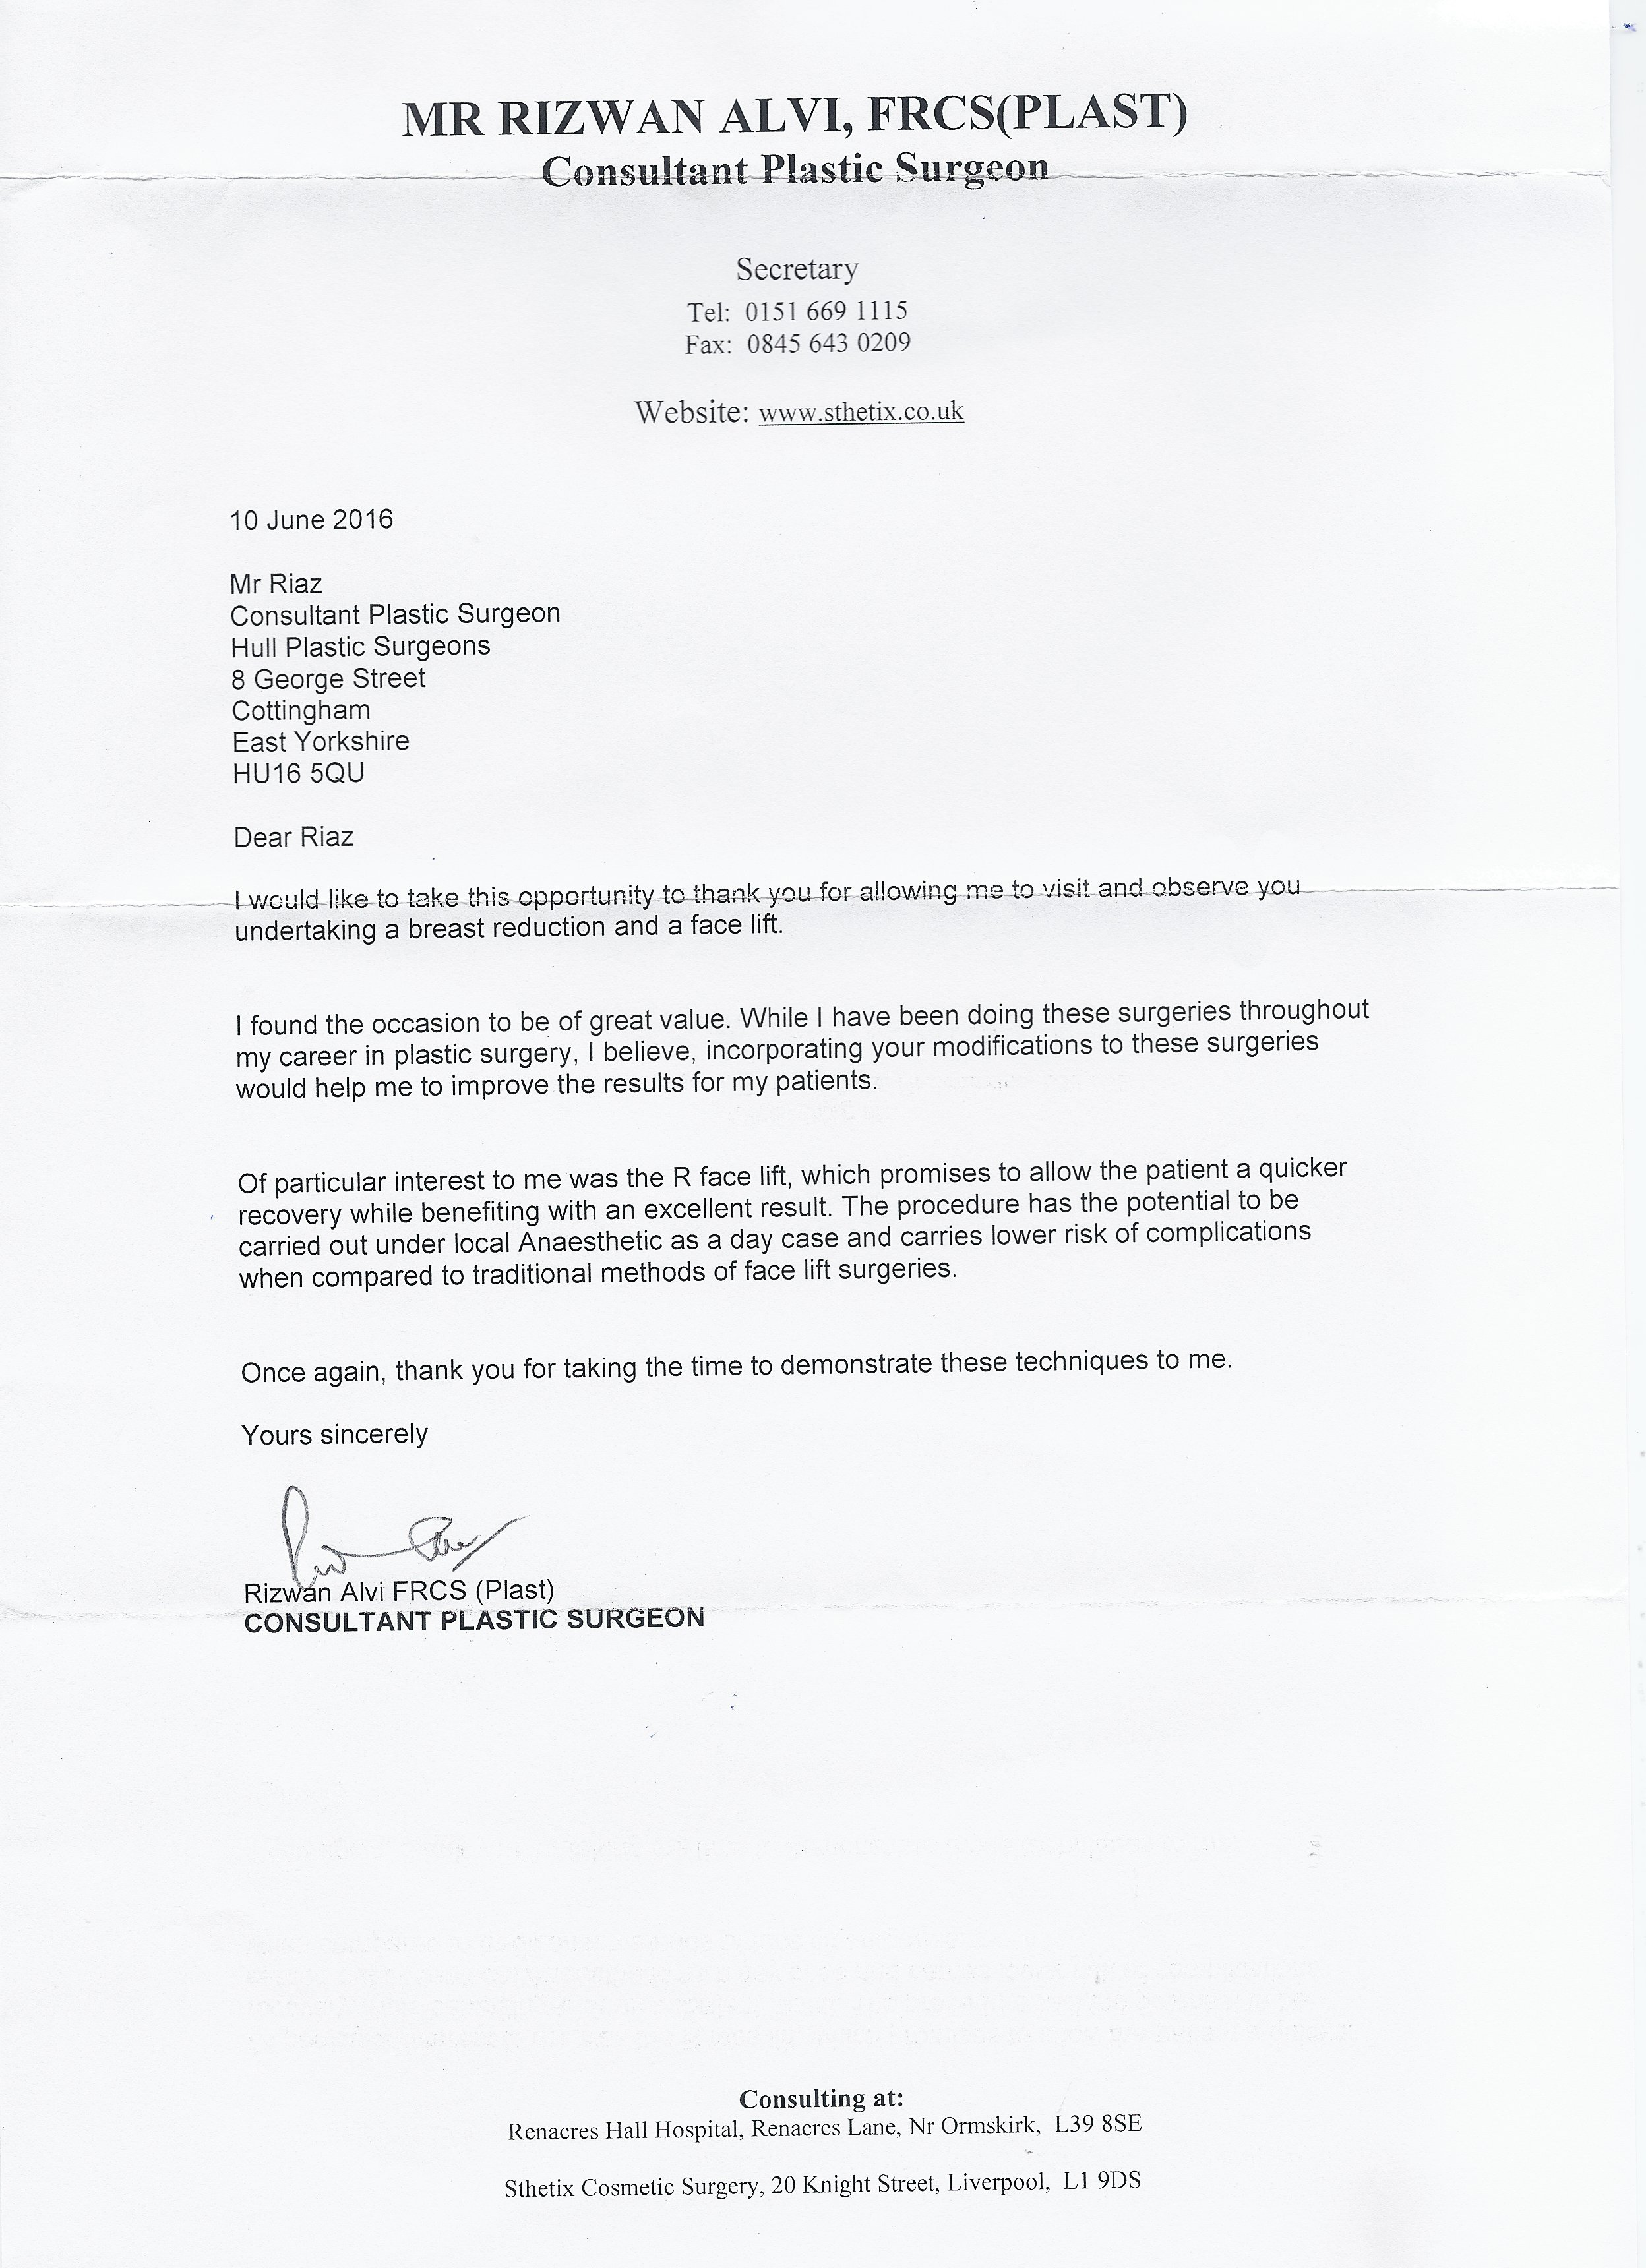 letter from Mr R alvi.JPG